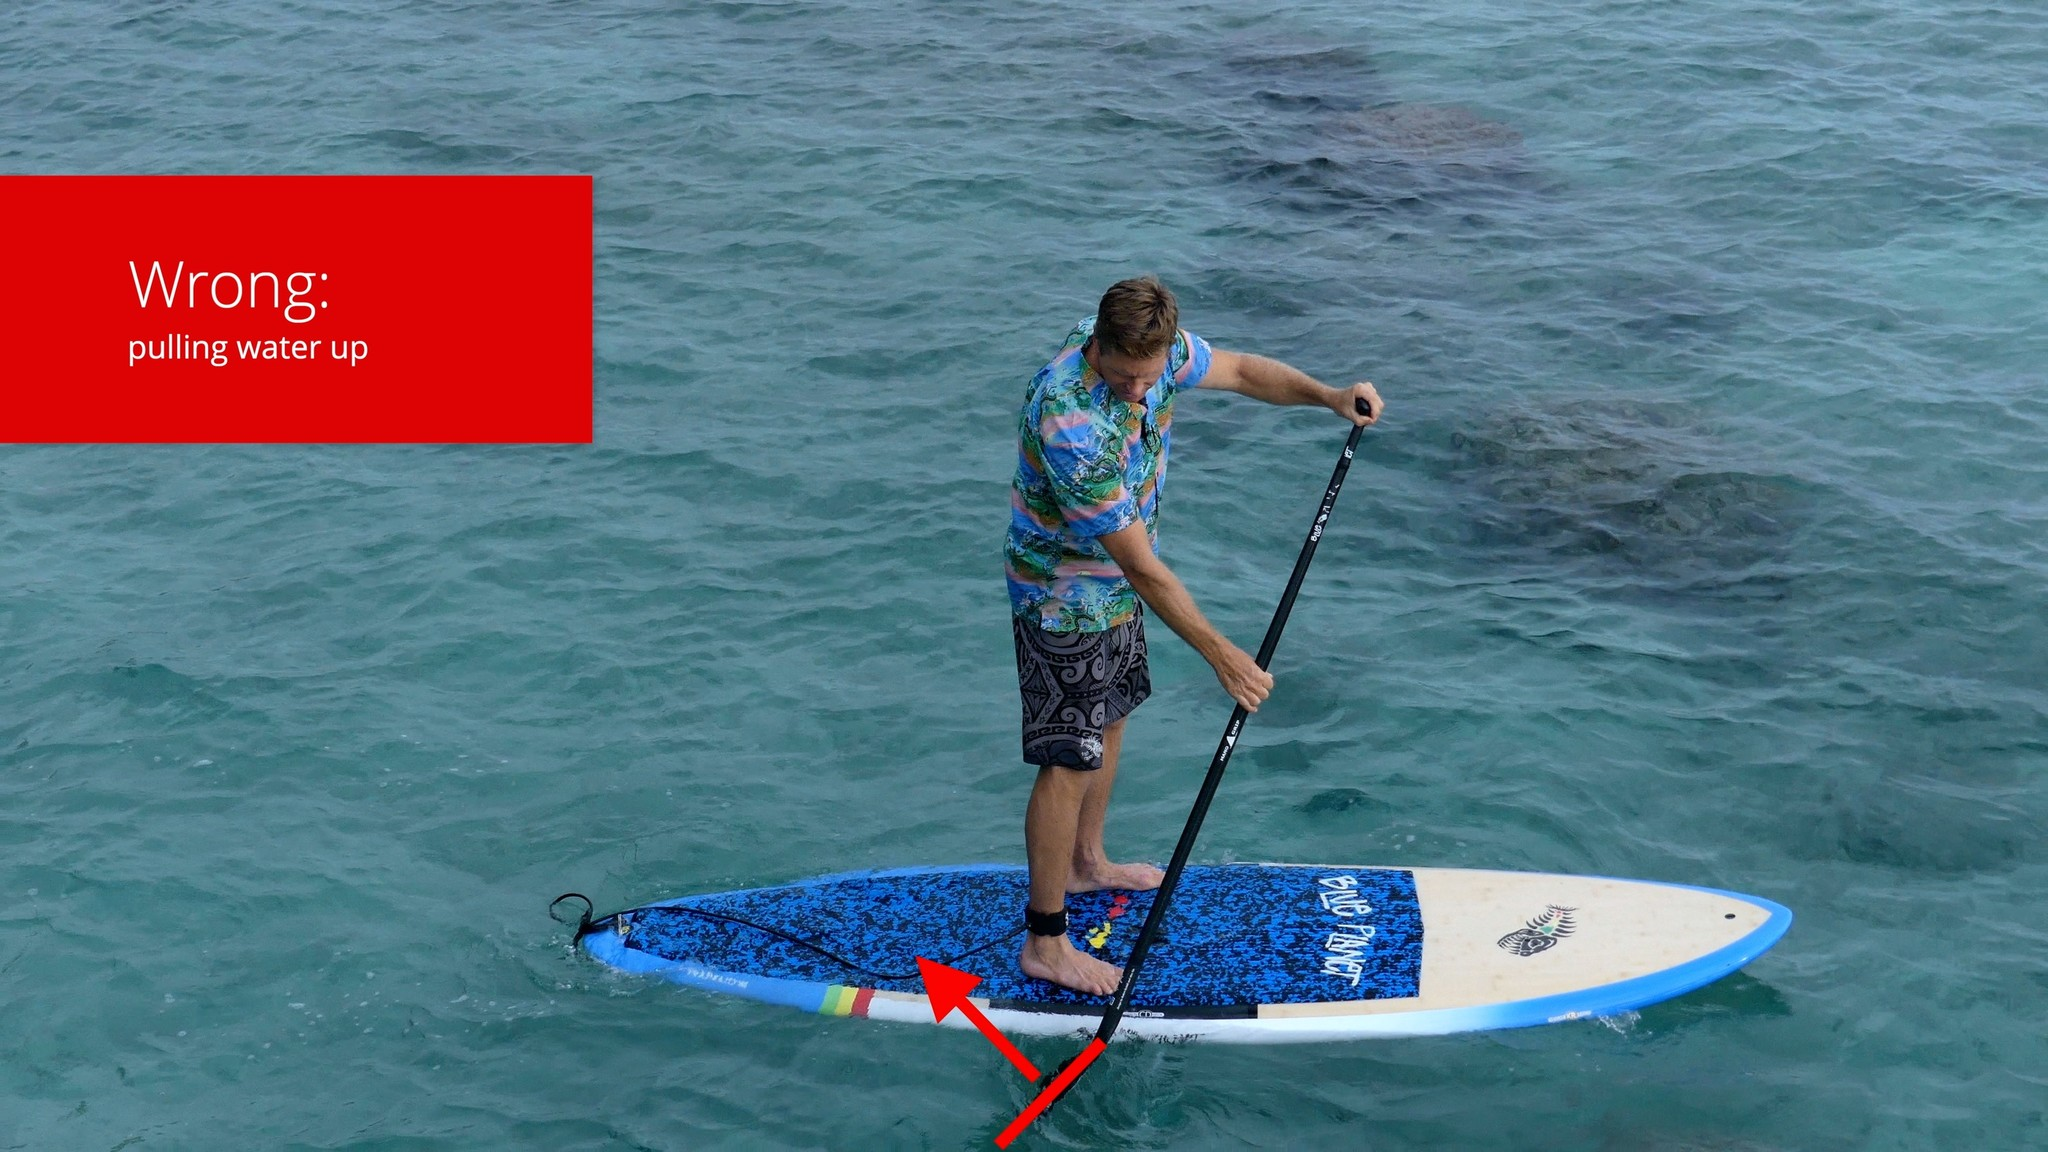 How to SUP wrong way to hold paddle